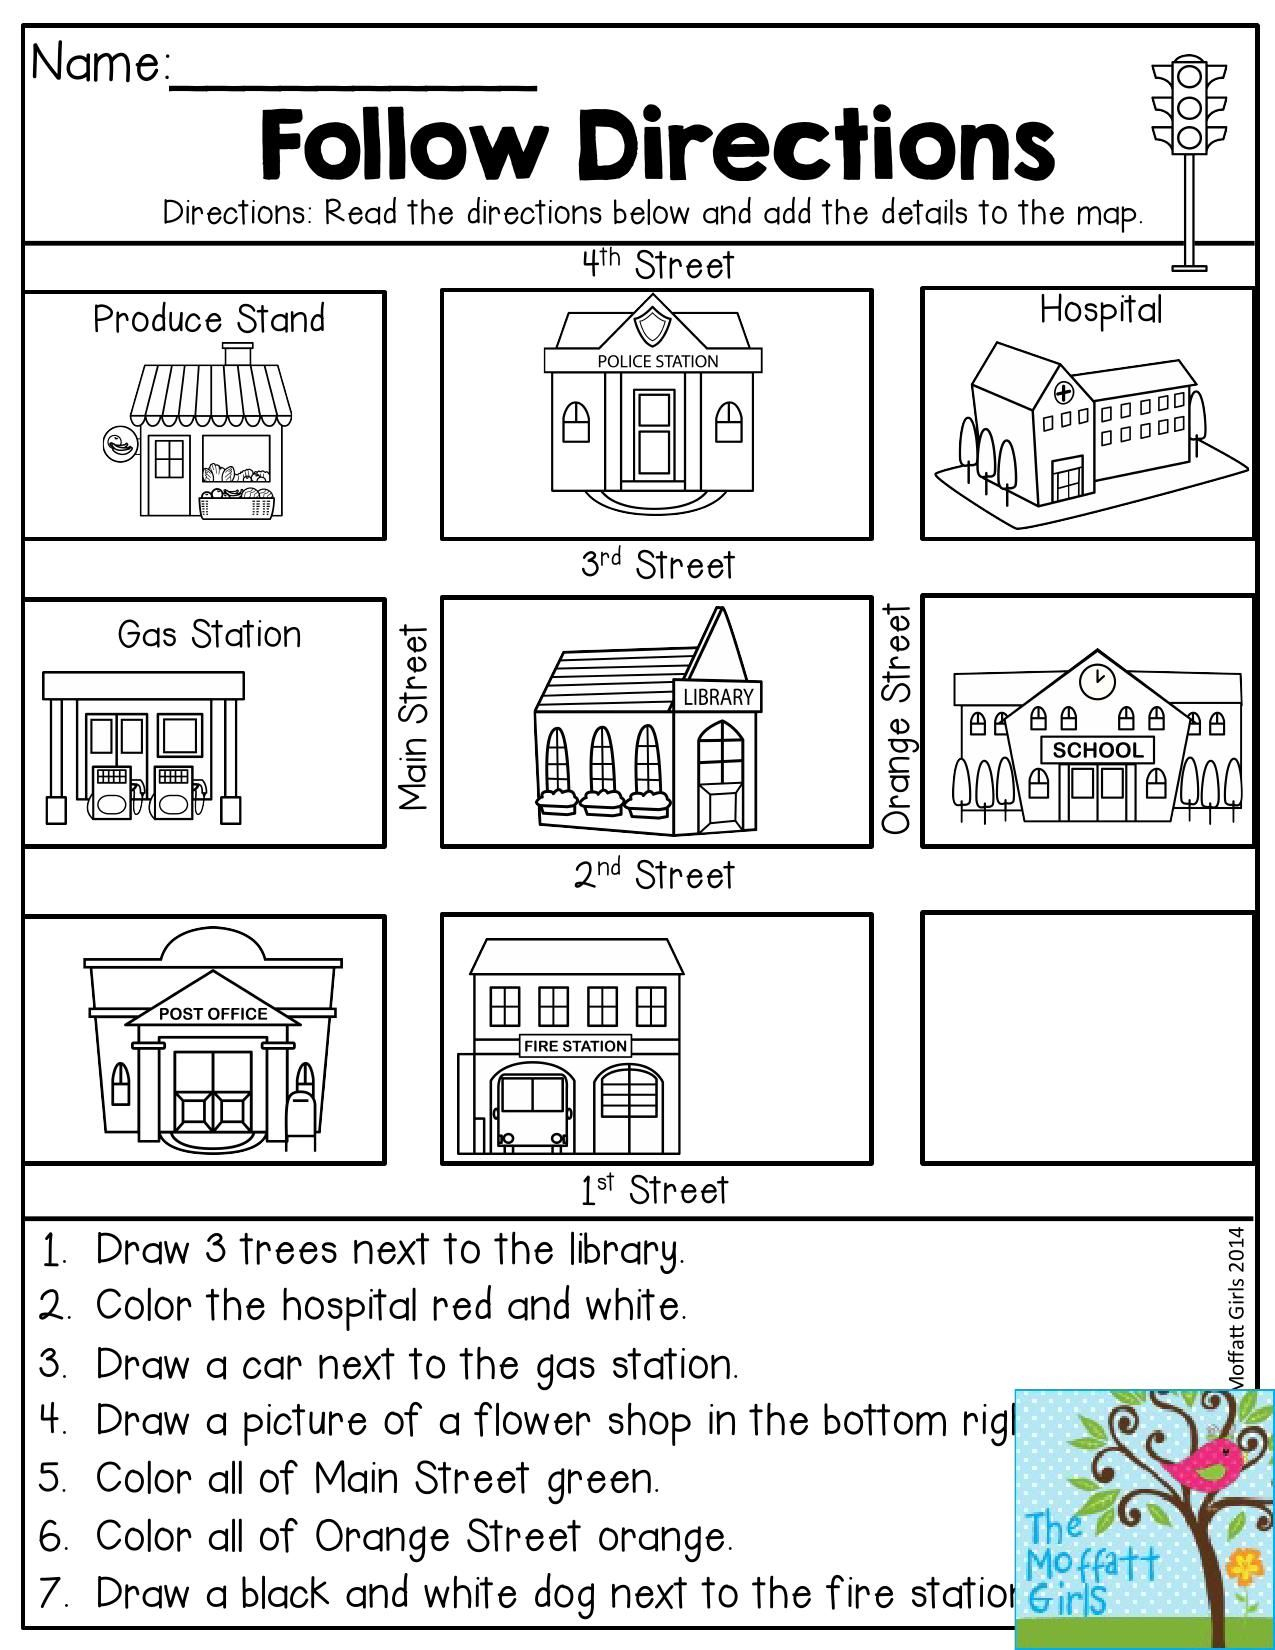 Follow Directions- Read The Directions And Add The Details To The - Free Printable Maps And Directions